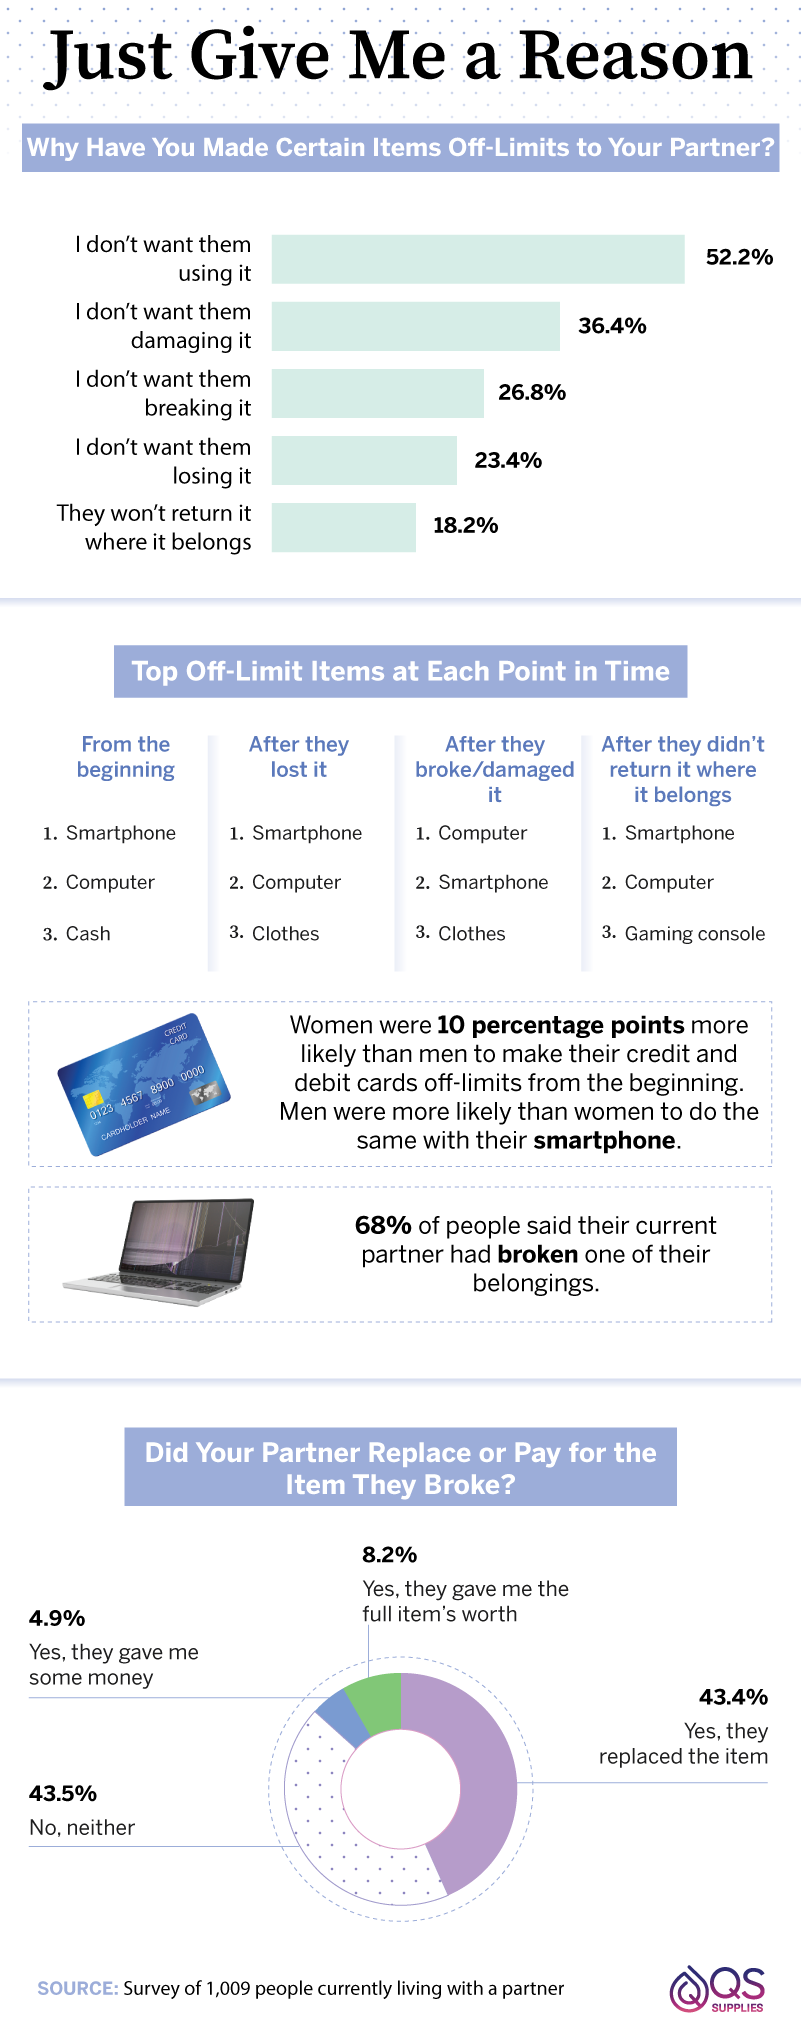 reasons-items-were-made-off-limits-to-partner-and-top-off-limits-items-at-each-point-in-time